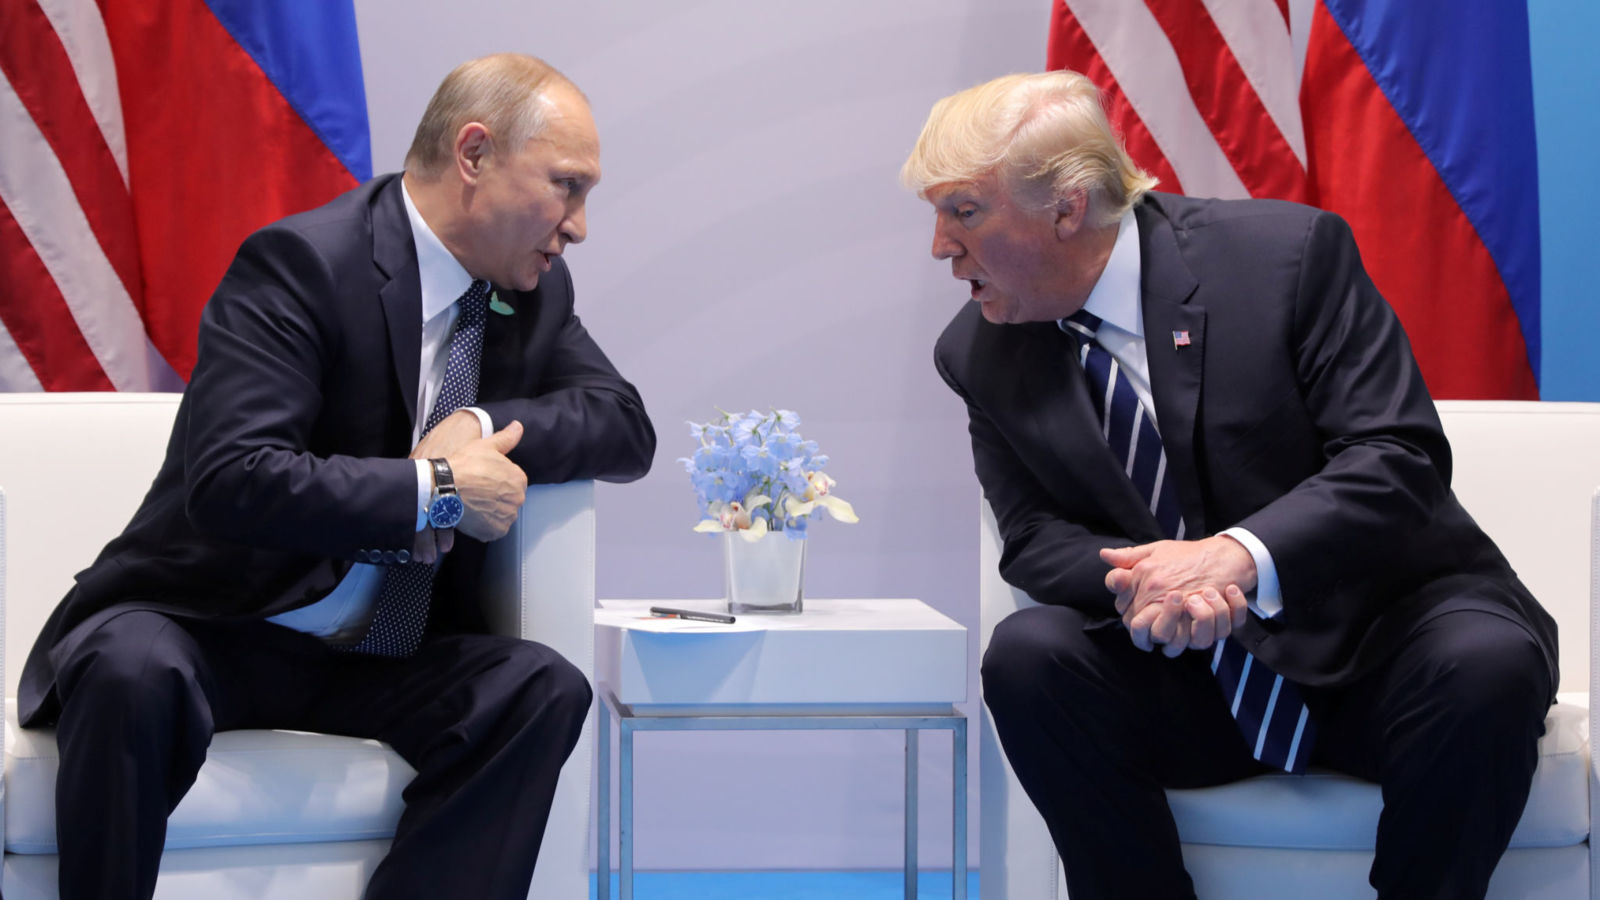 Russia demands immediate return of diplomatic property from US